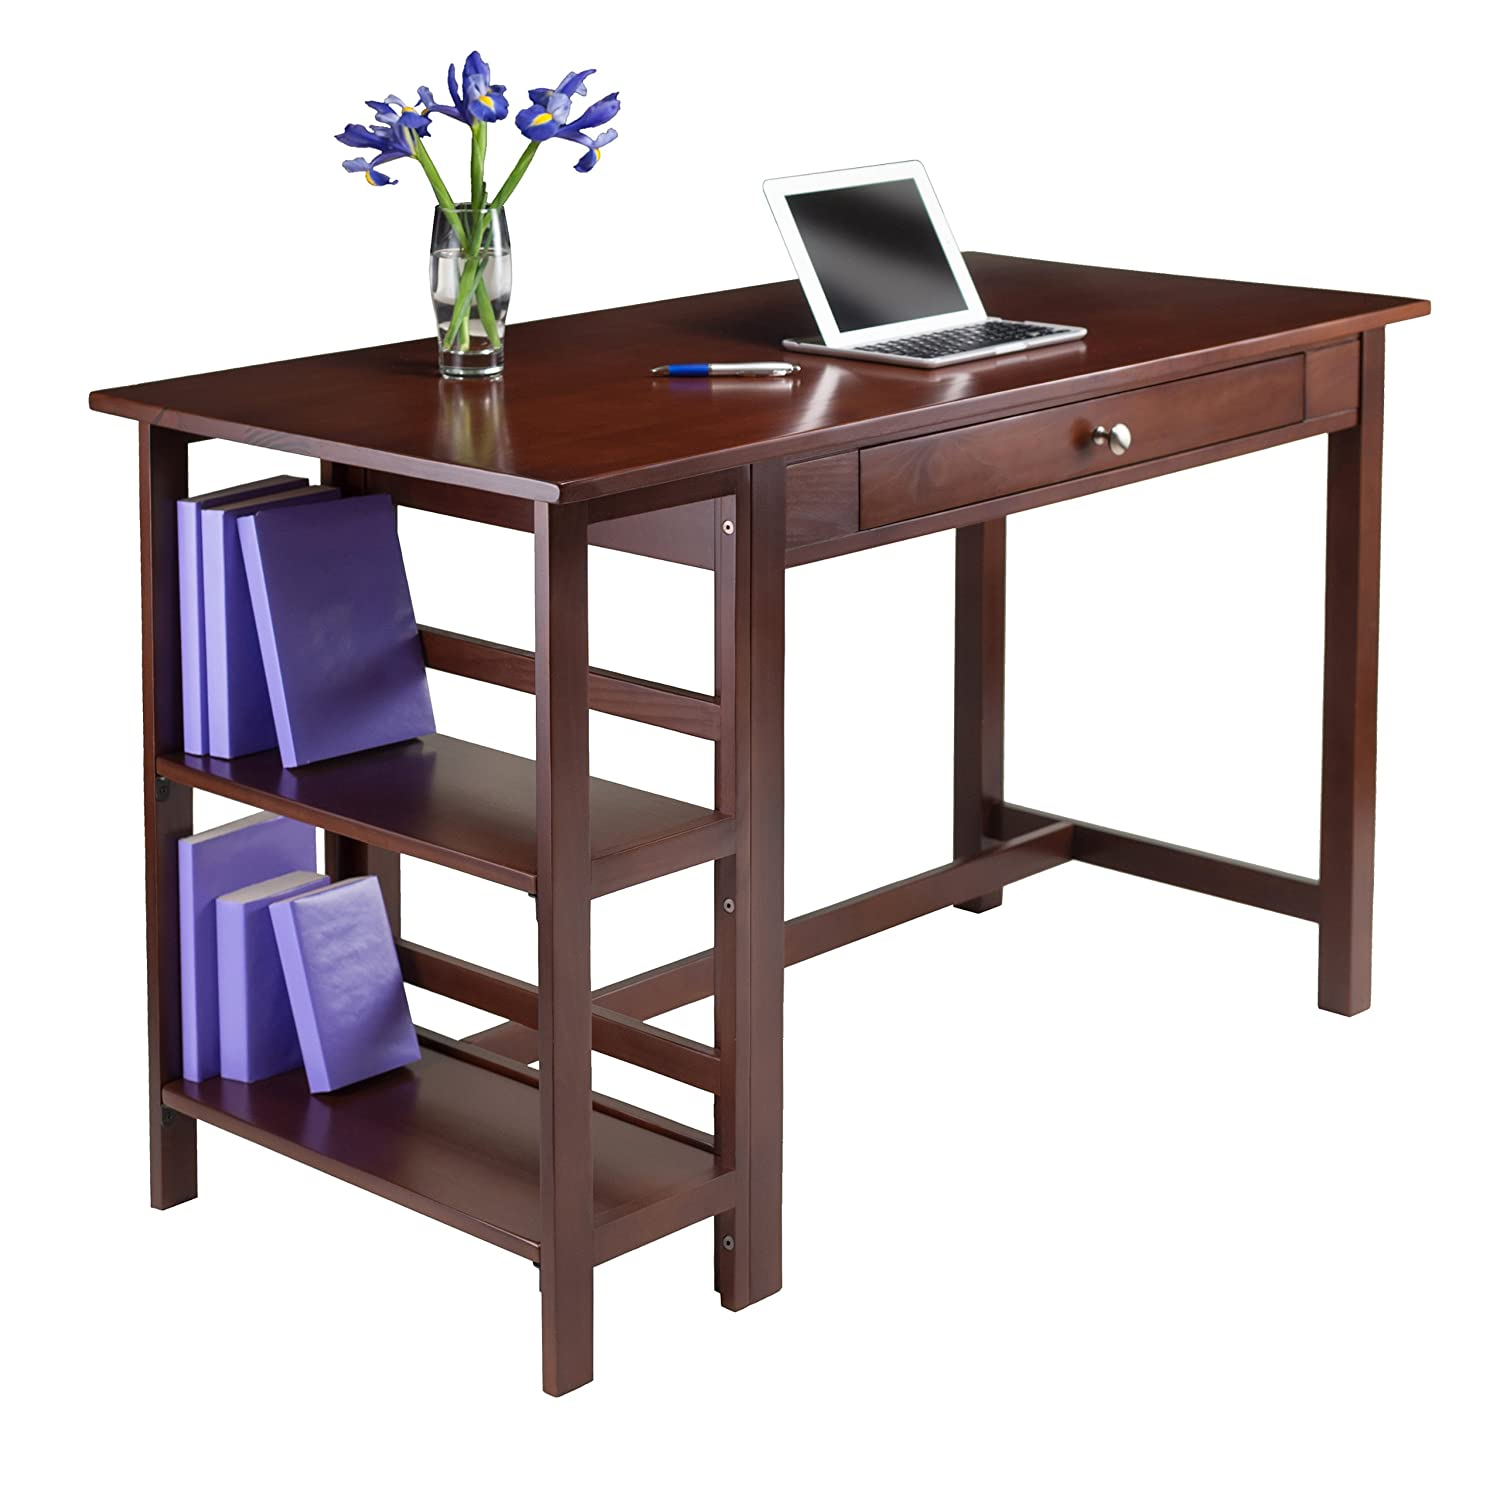 top desk info desktop riser shelf hd sanalee shelves background wallpaper